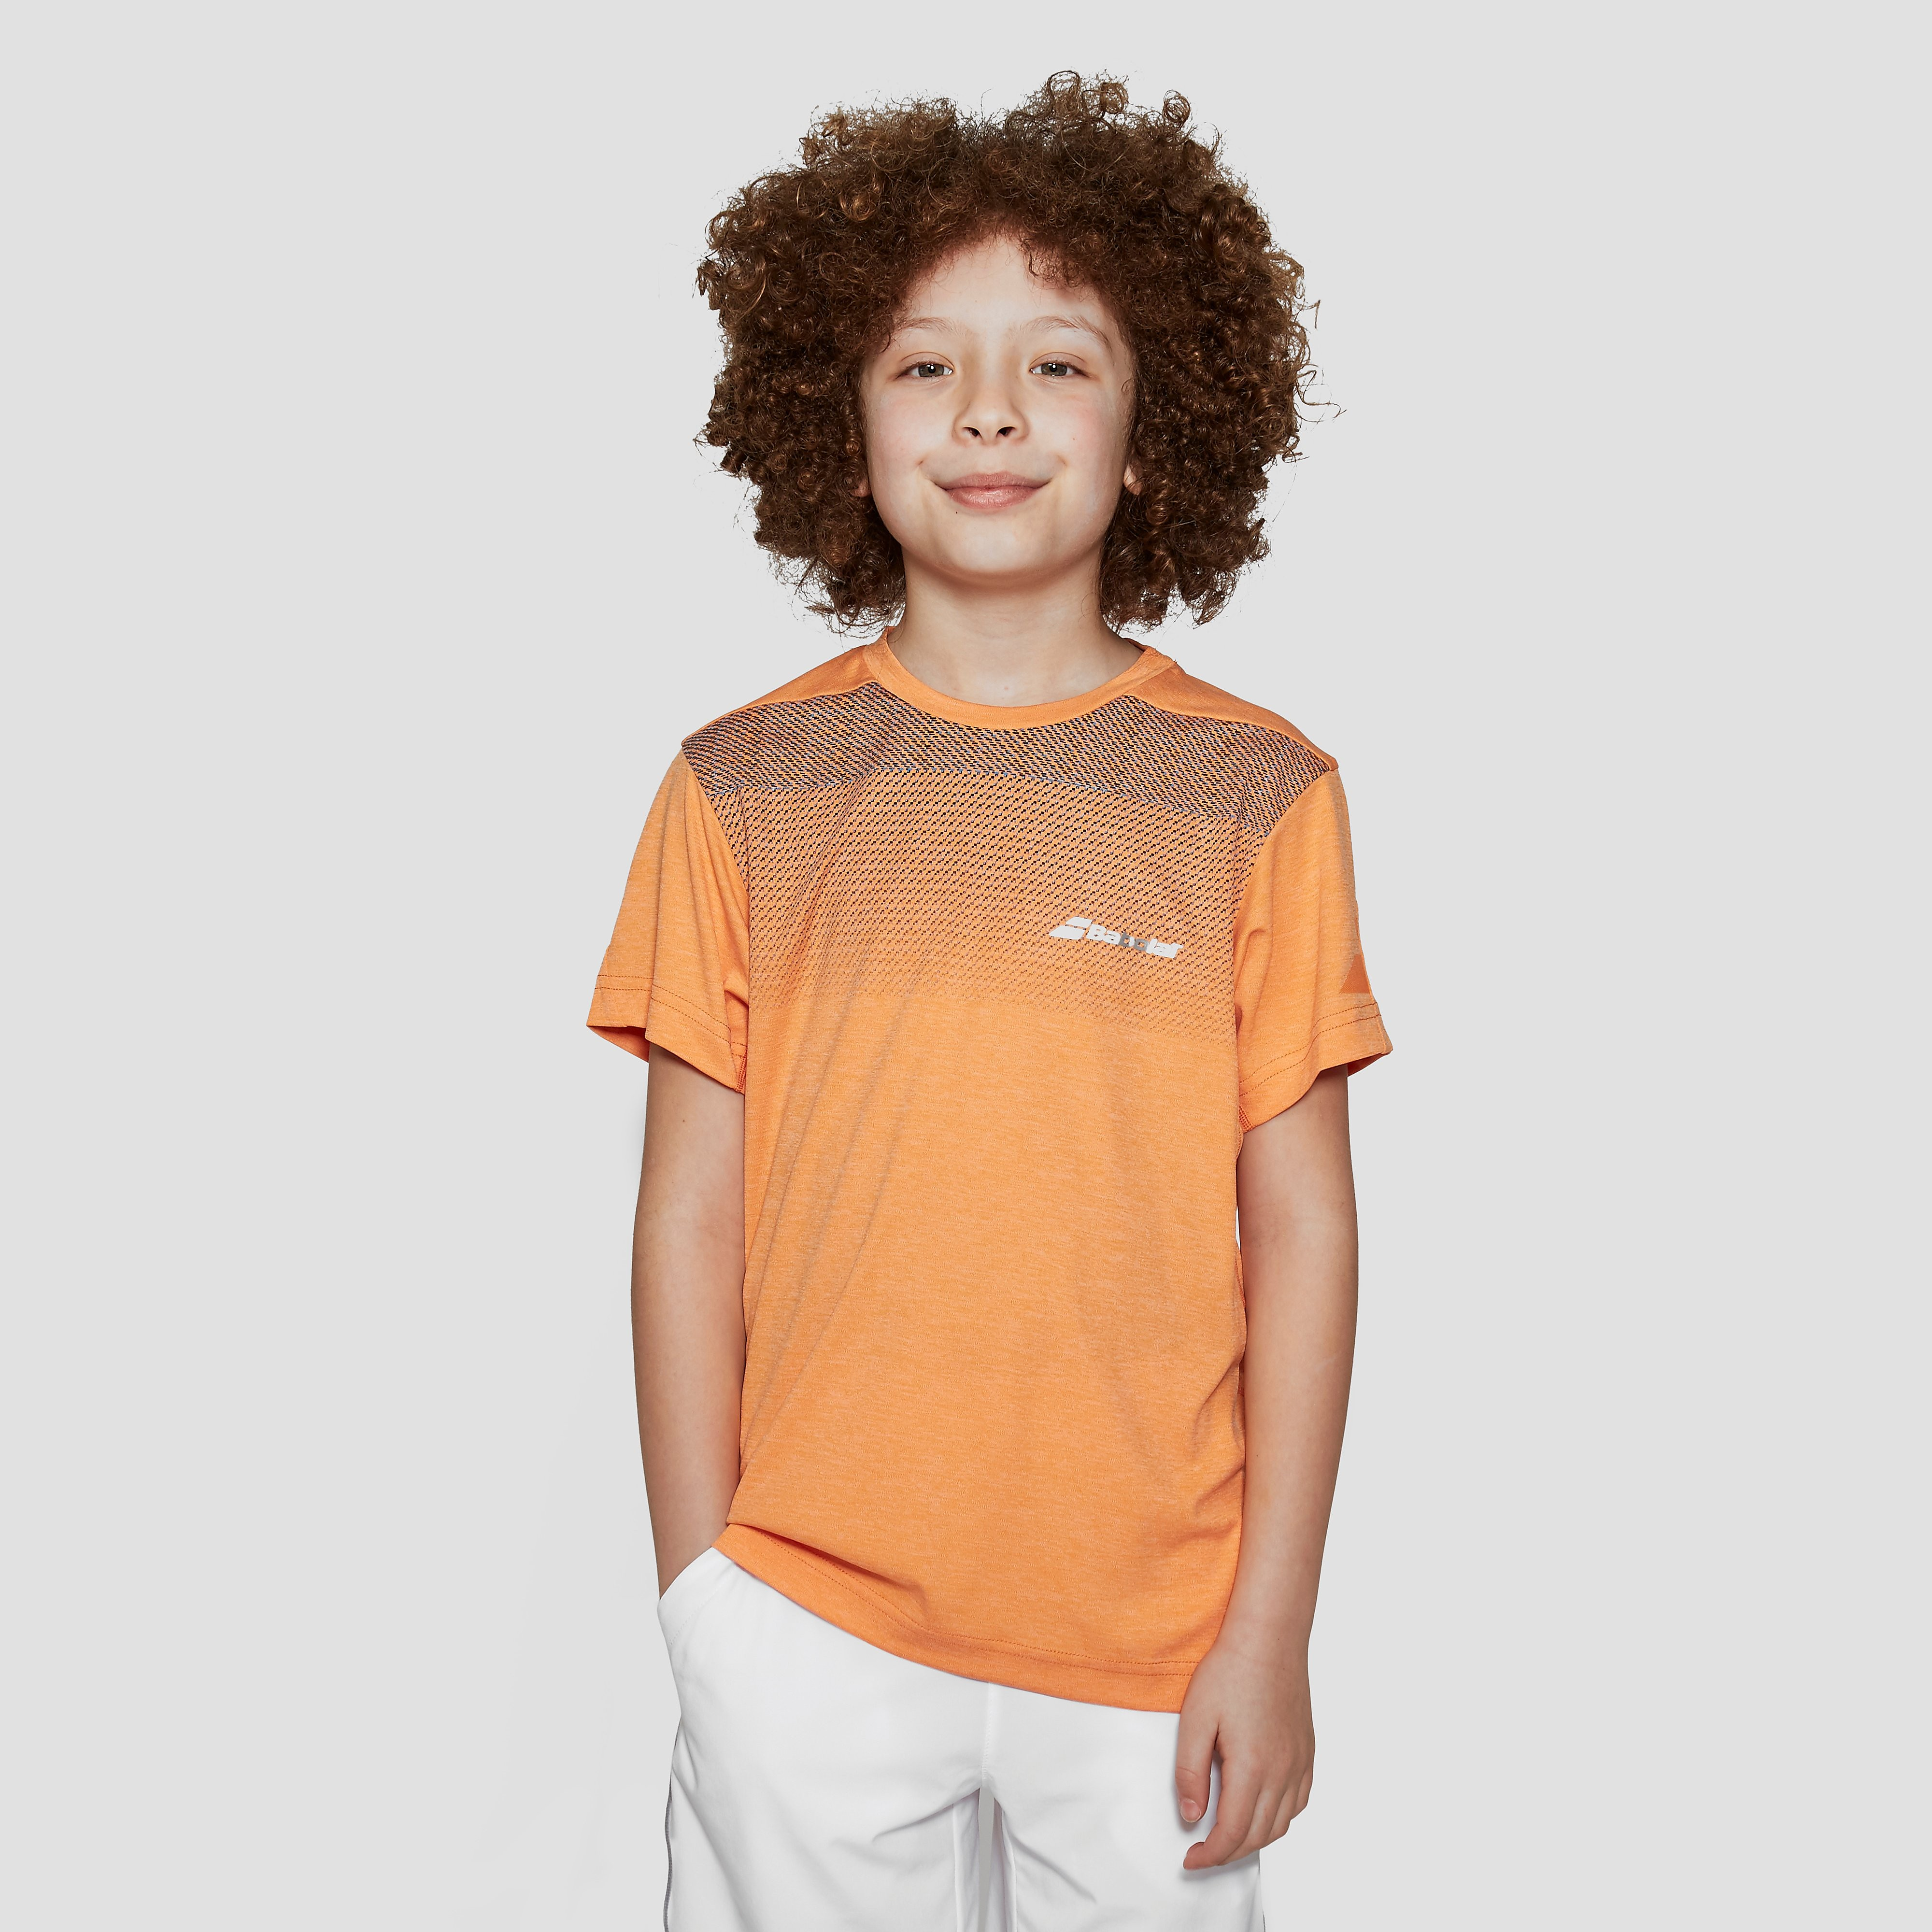 Babolat Performance Crew Neck Junior Tennis T-shirt